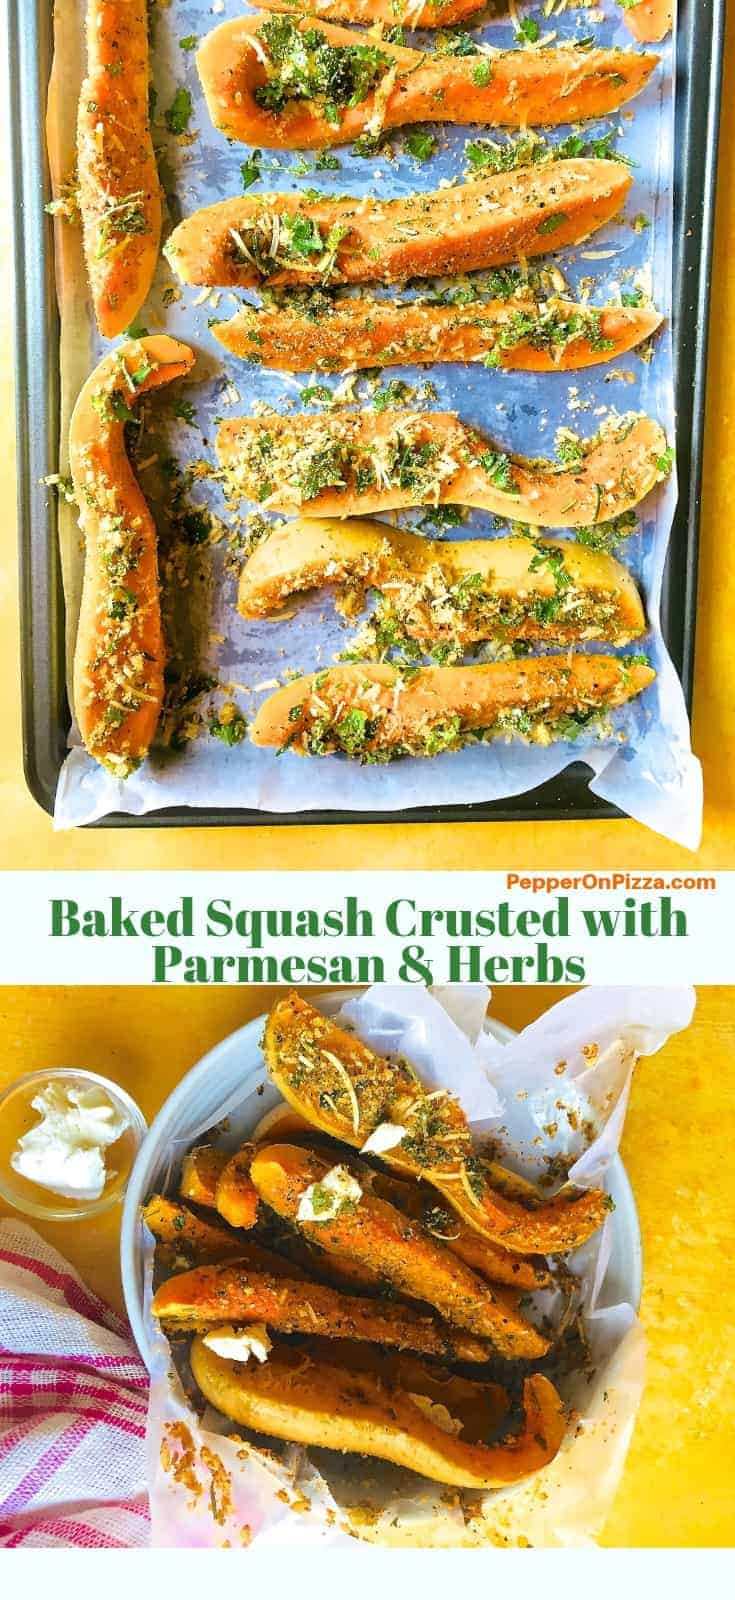 Parmesan and herbs crusted squash spread on a baking tray ready for baking